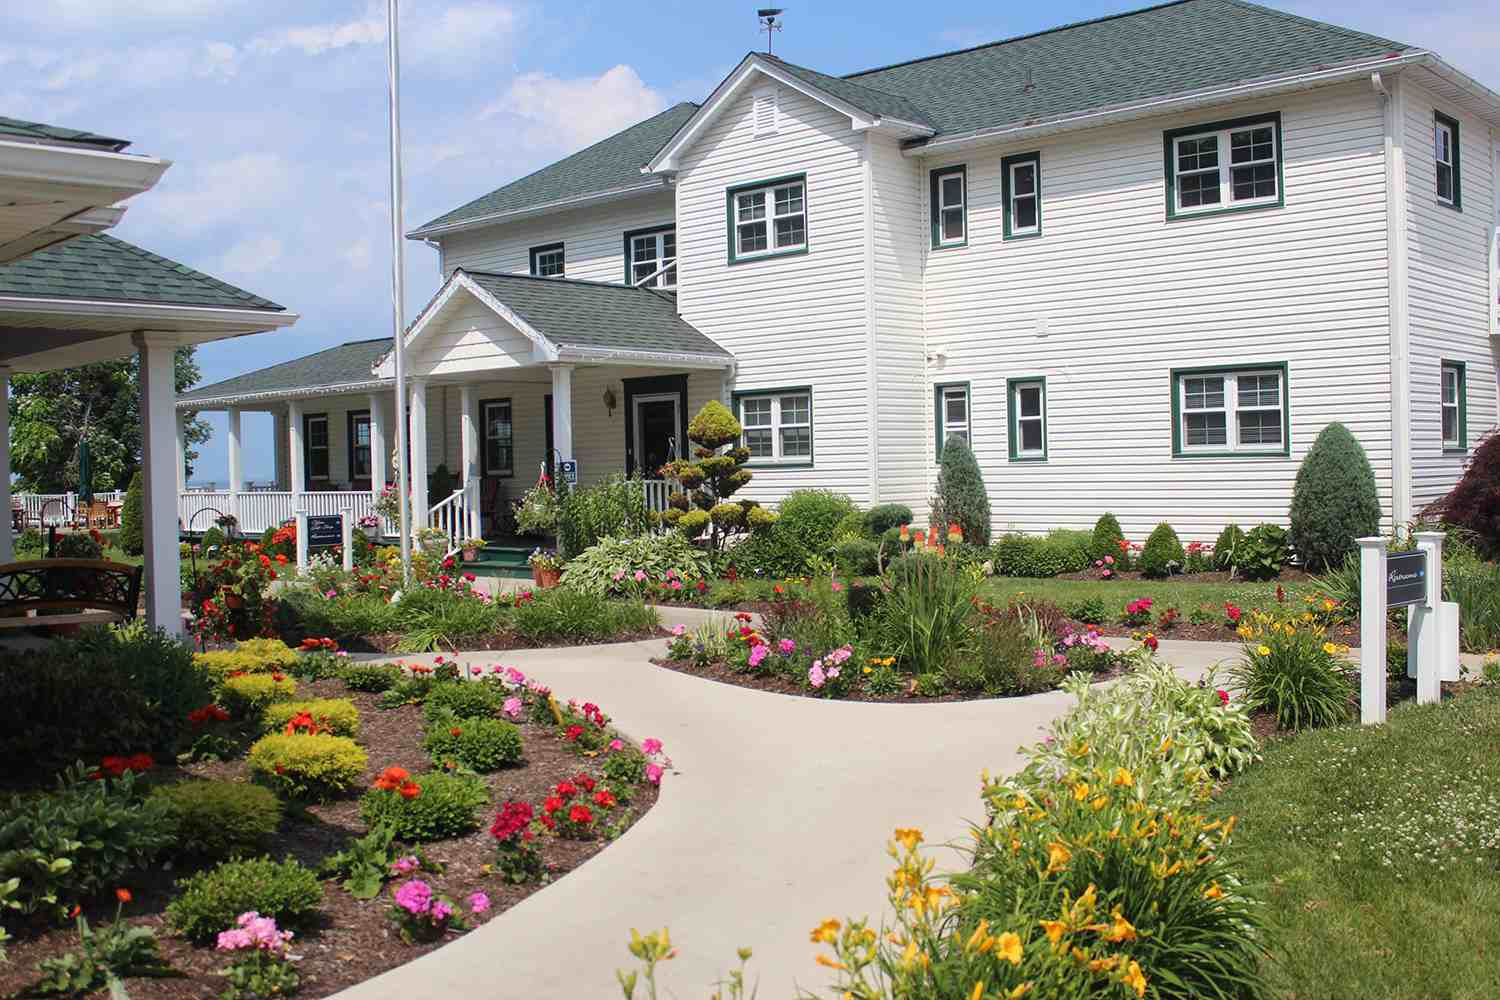 Lakehouse Inn and Winery